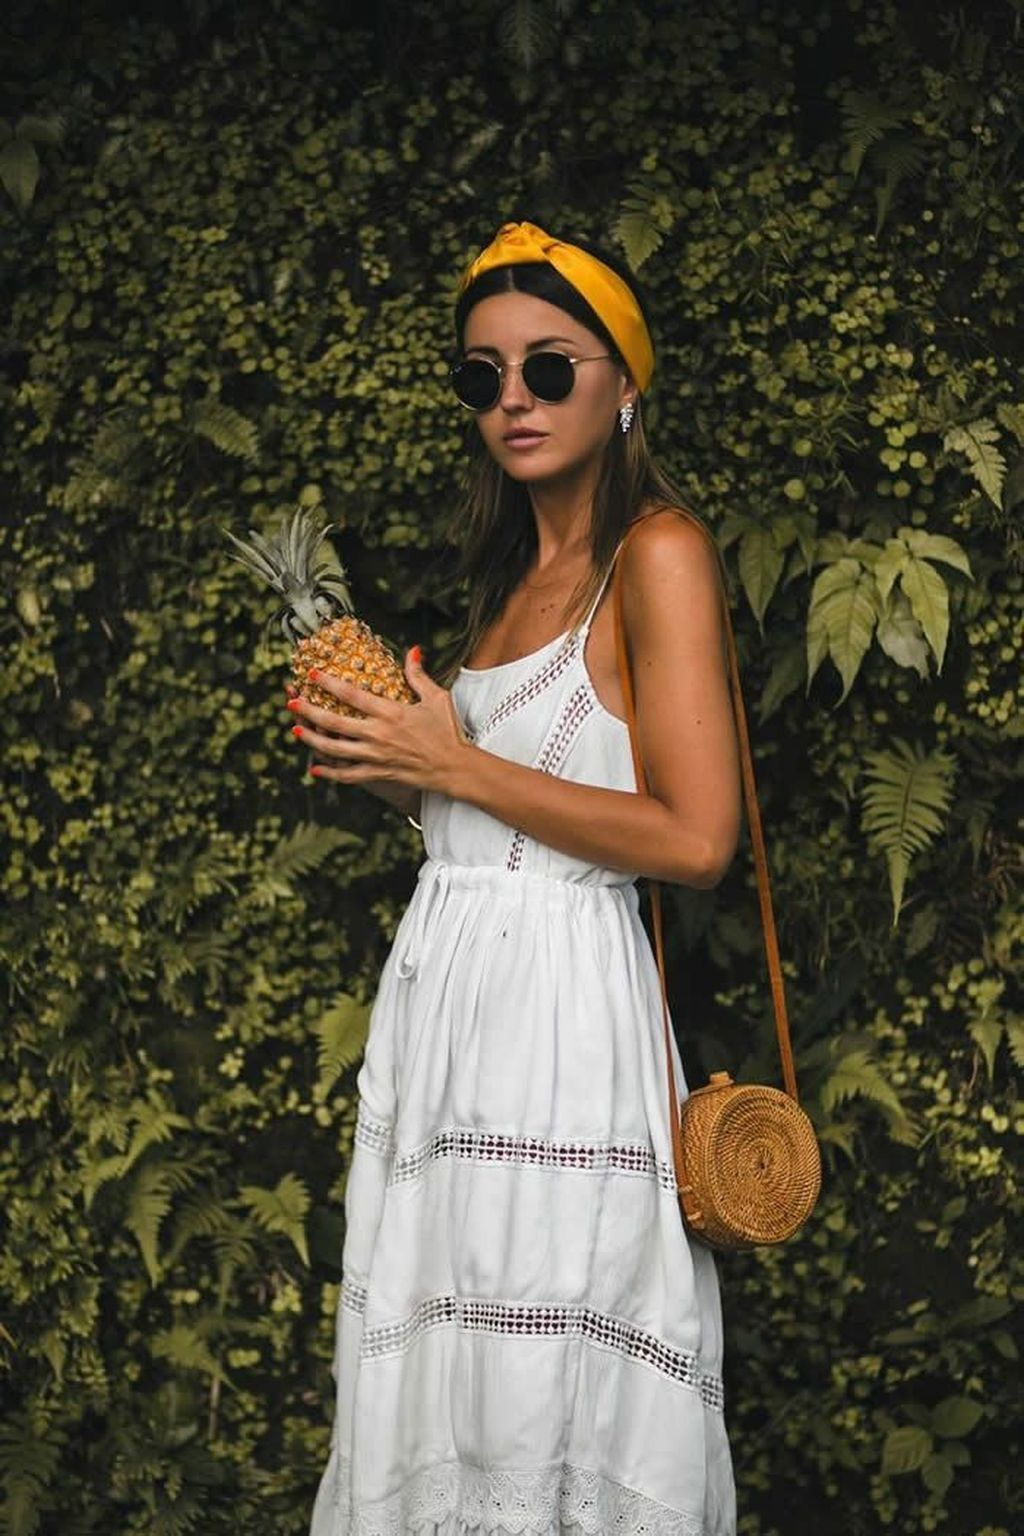 44 Vintage Summer Outfits Ideas To Copy Asap